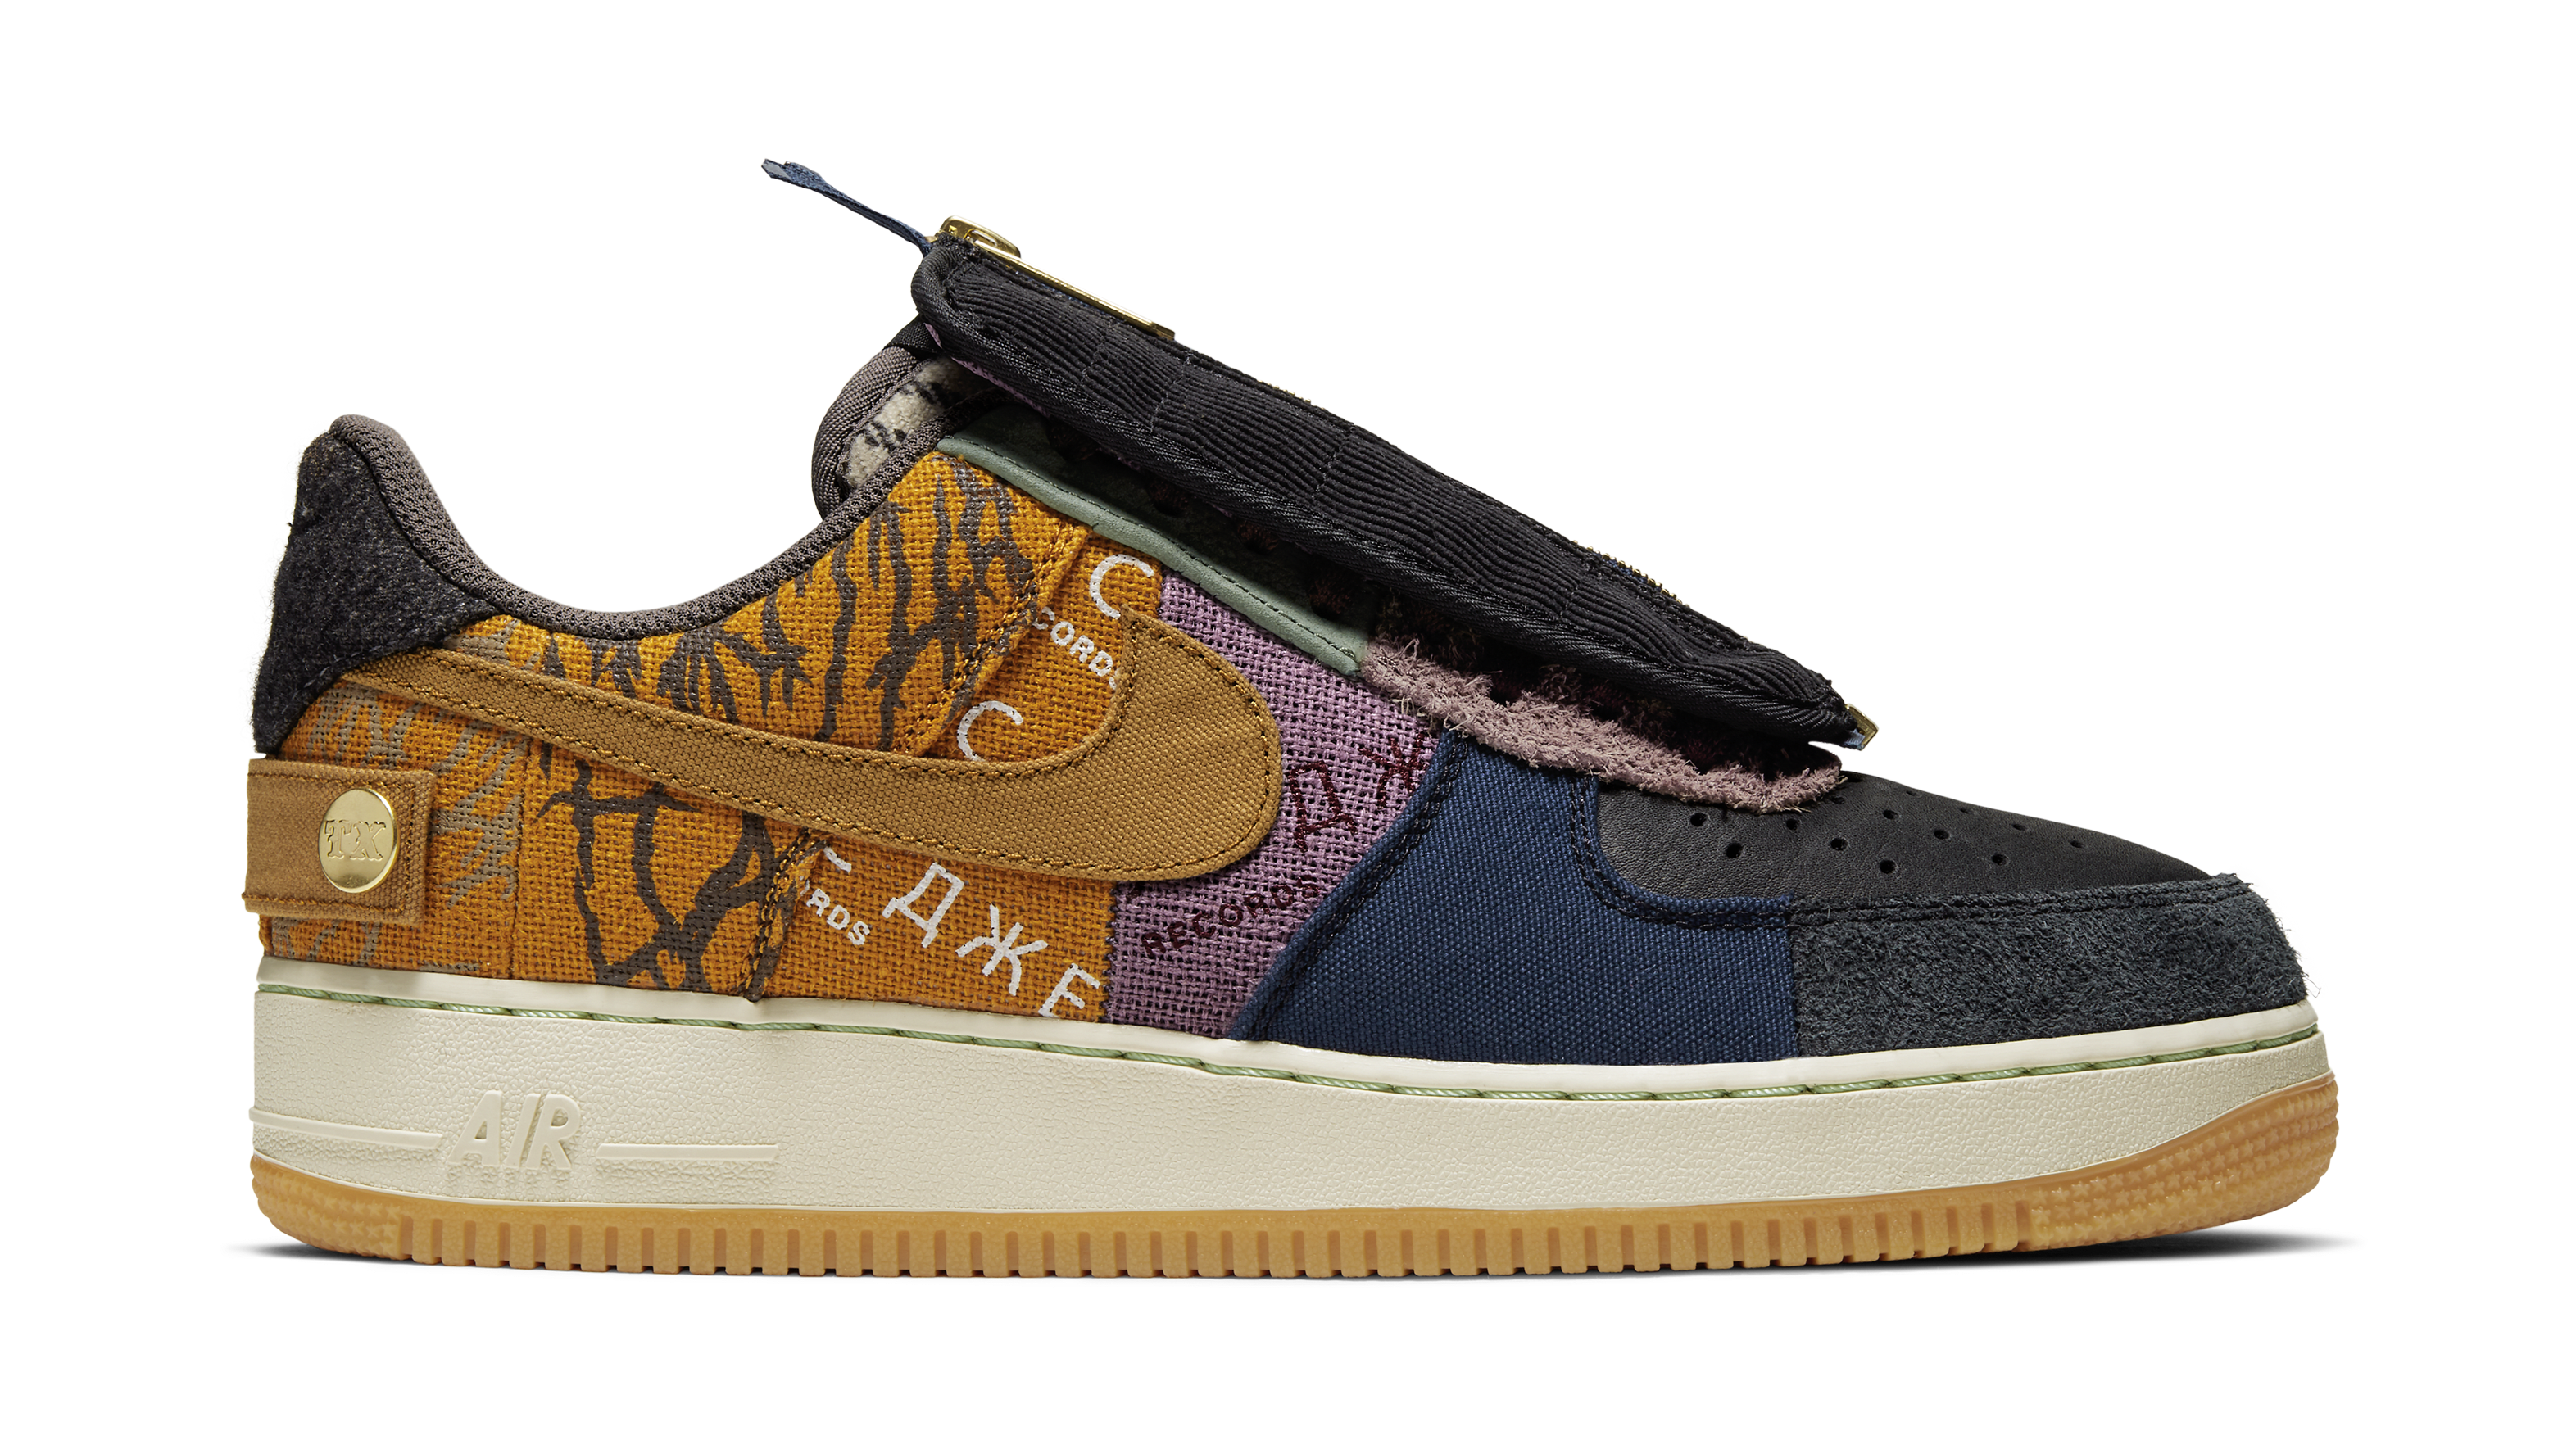 Travis Scott x Nike Air Force 1 Low 'Multi ColorMuted